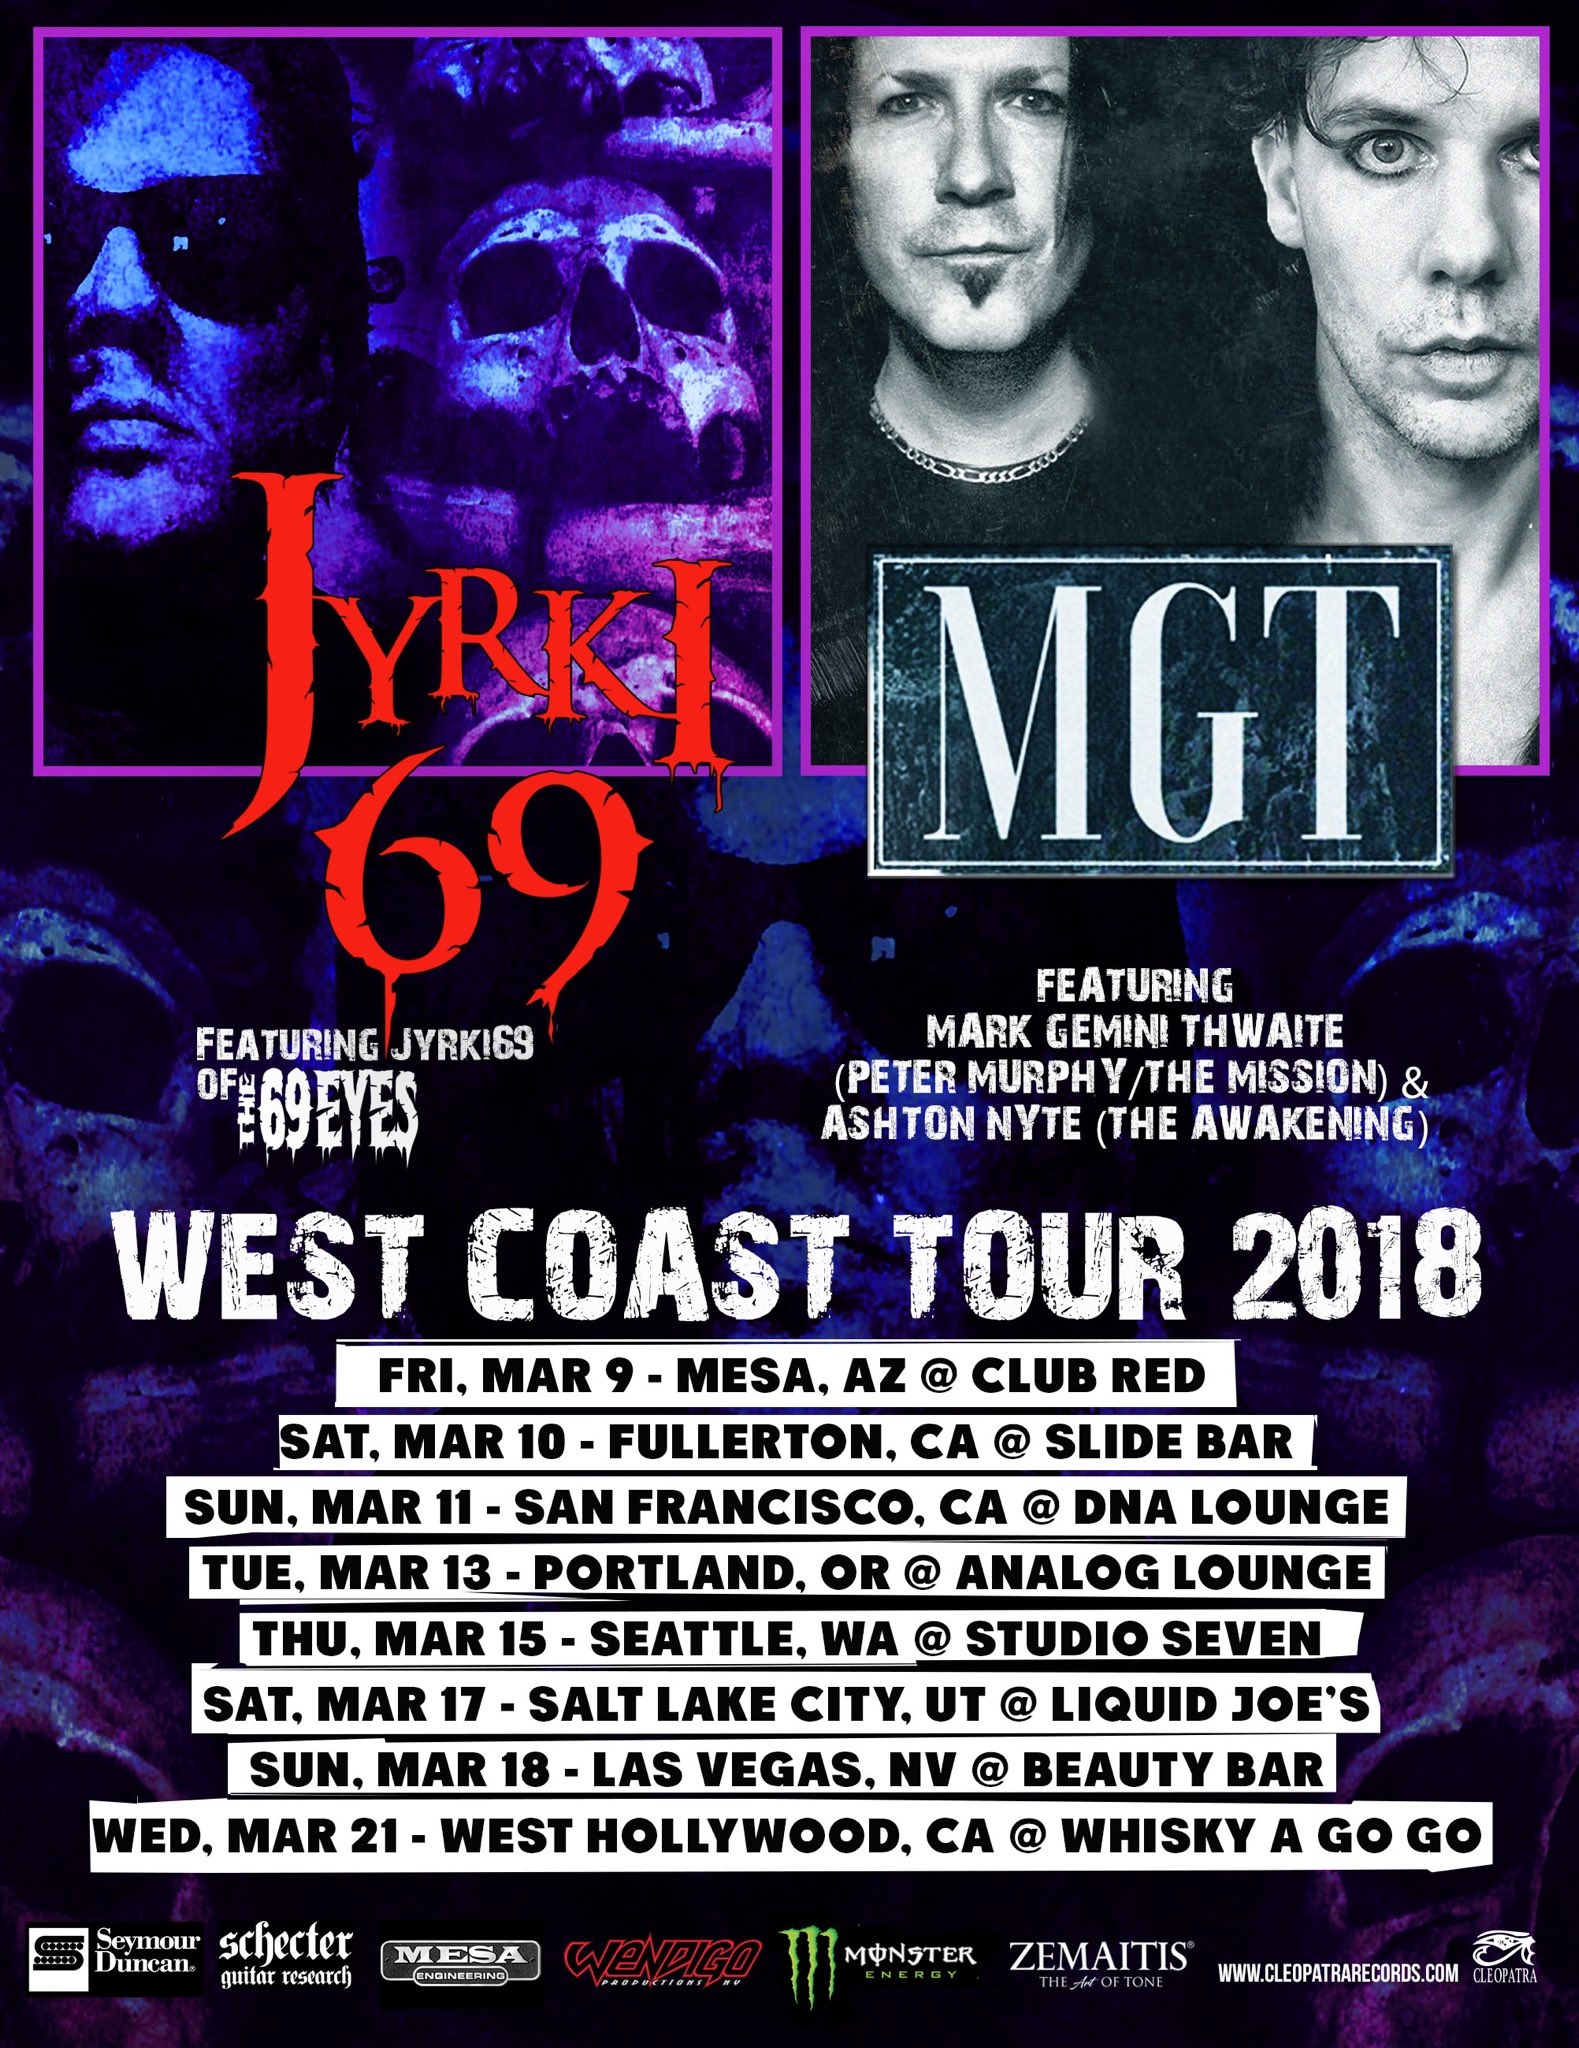 Jryki 69 & MGT - Tour Dates